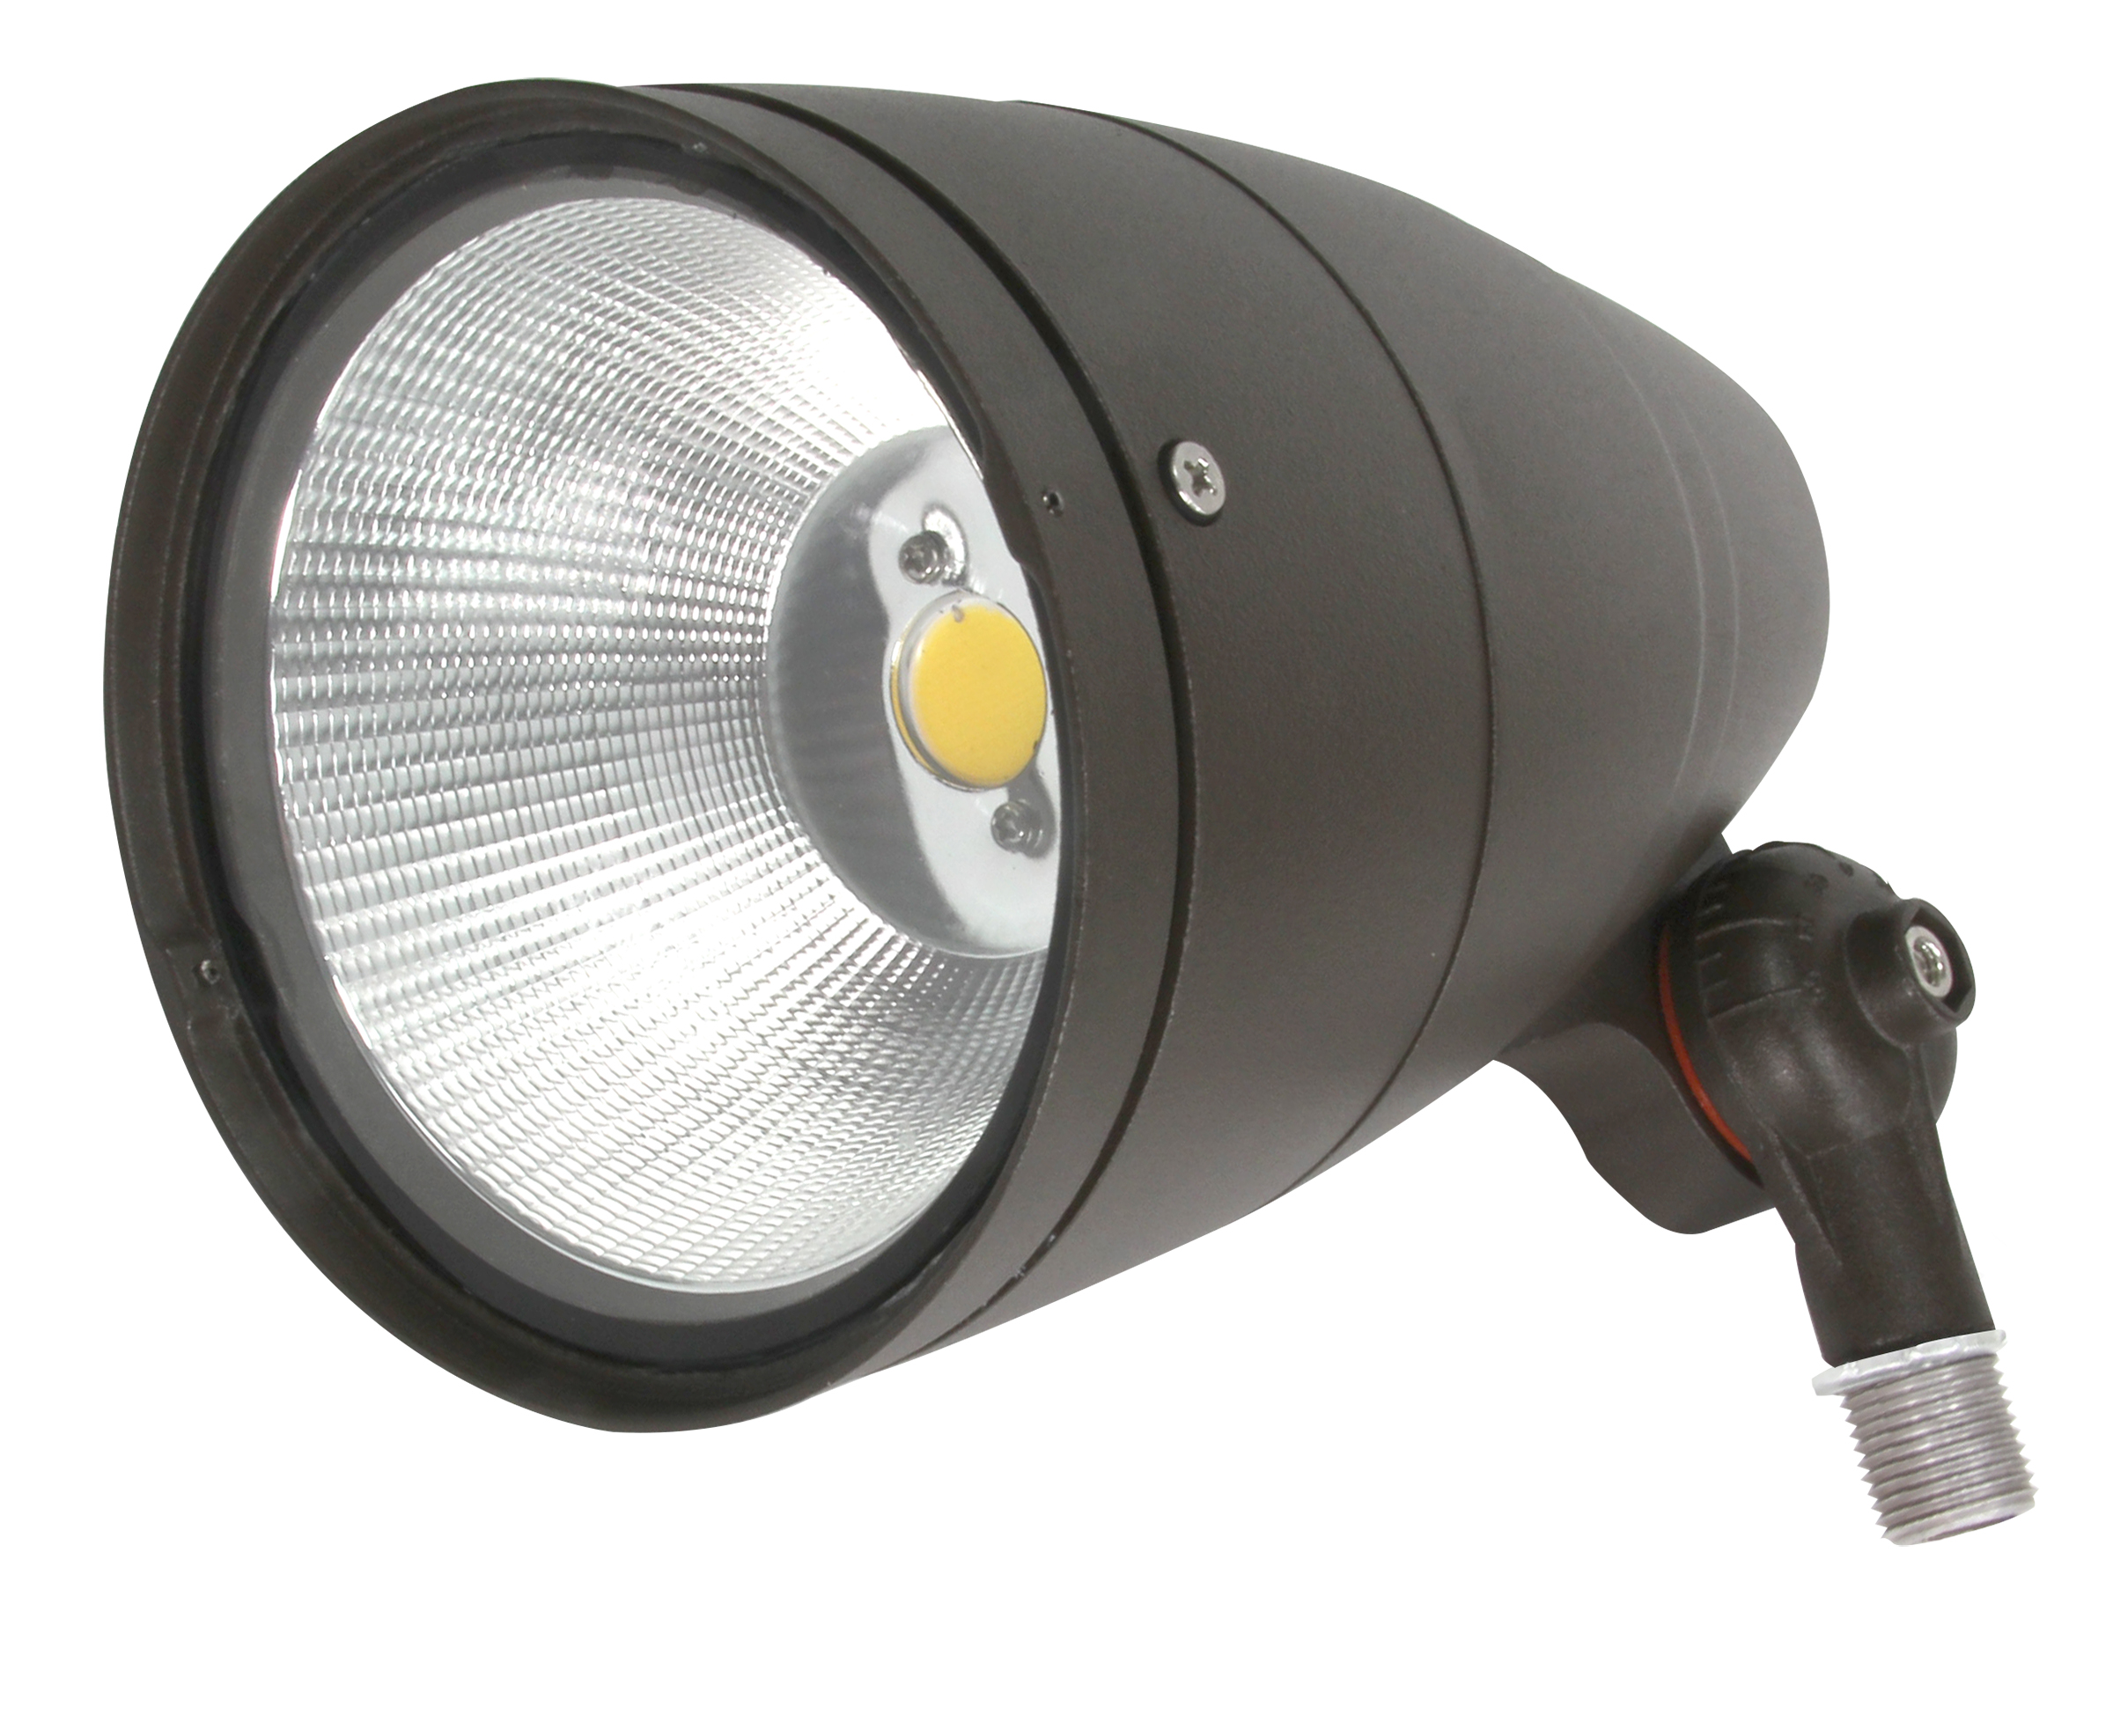 Econimical LED Spot Lights